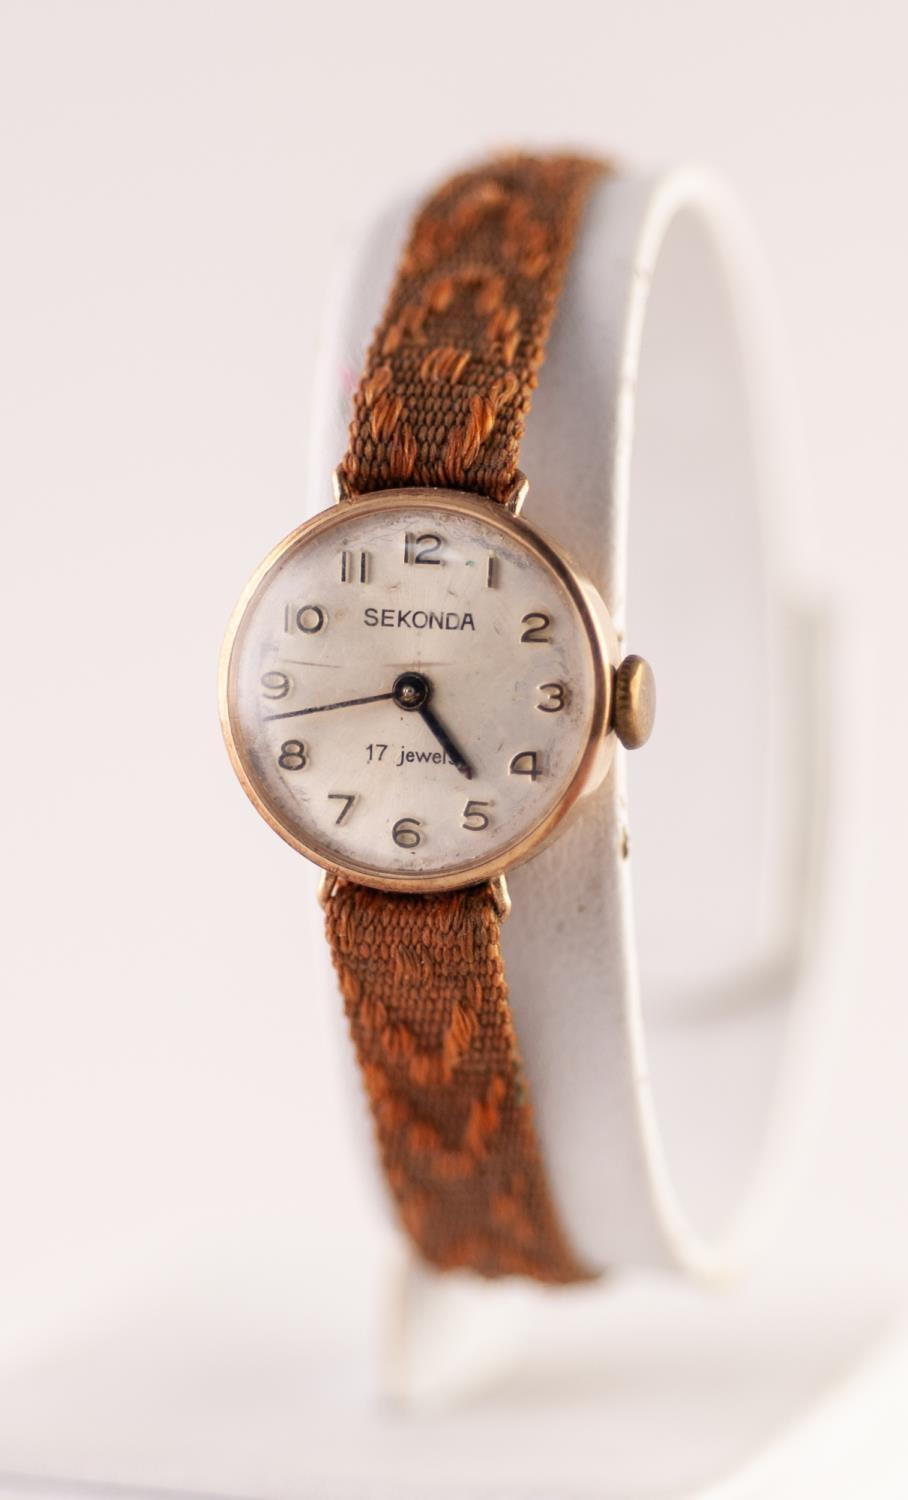 Lot 7 - A 1960s LADIES 9CT GOLD CASED SEKONDA WRISTWATCH 17 jewel movement numbered 1509611, silvered